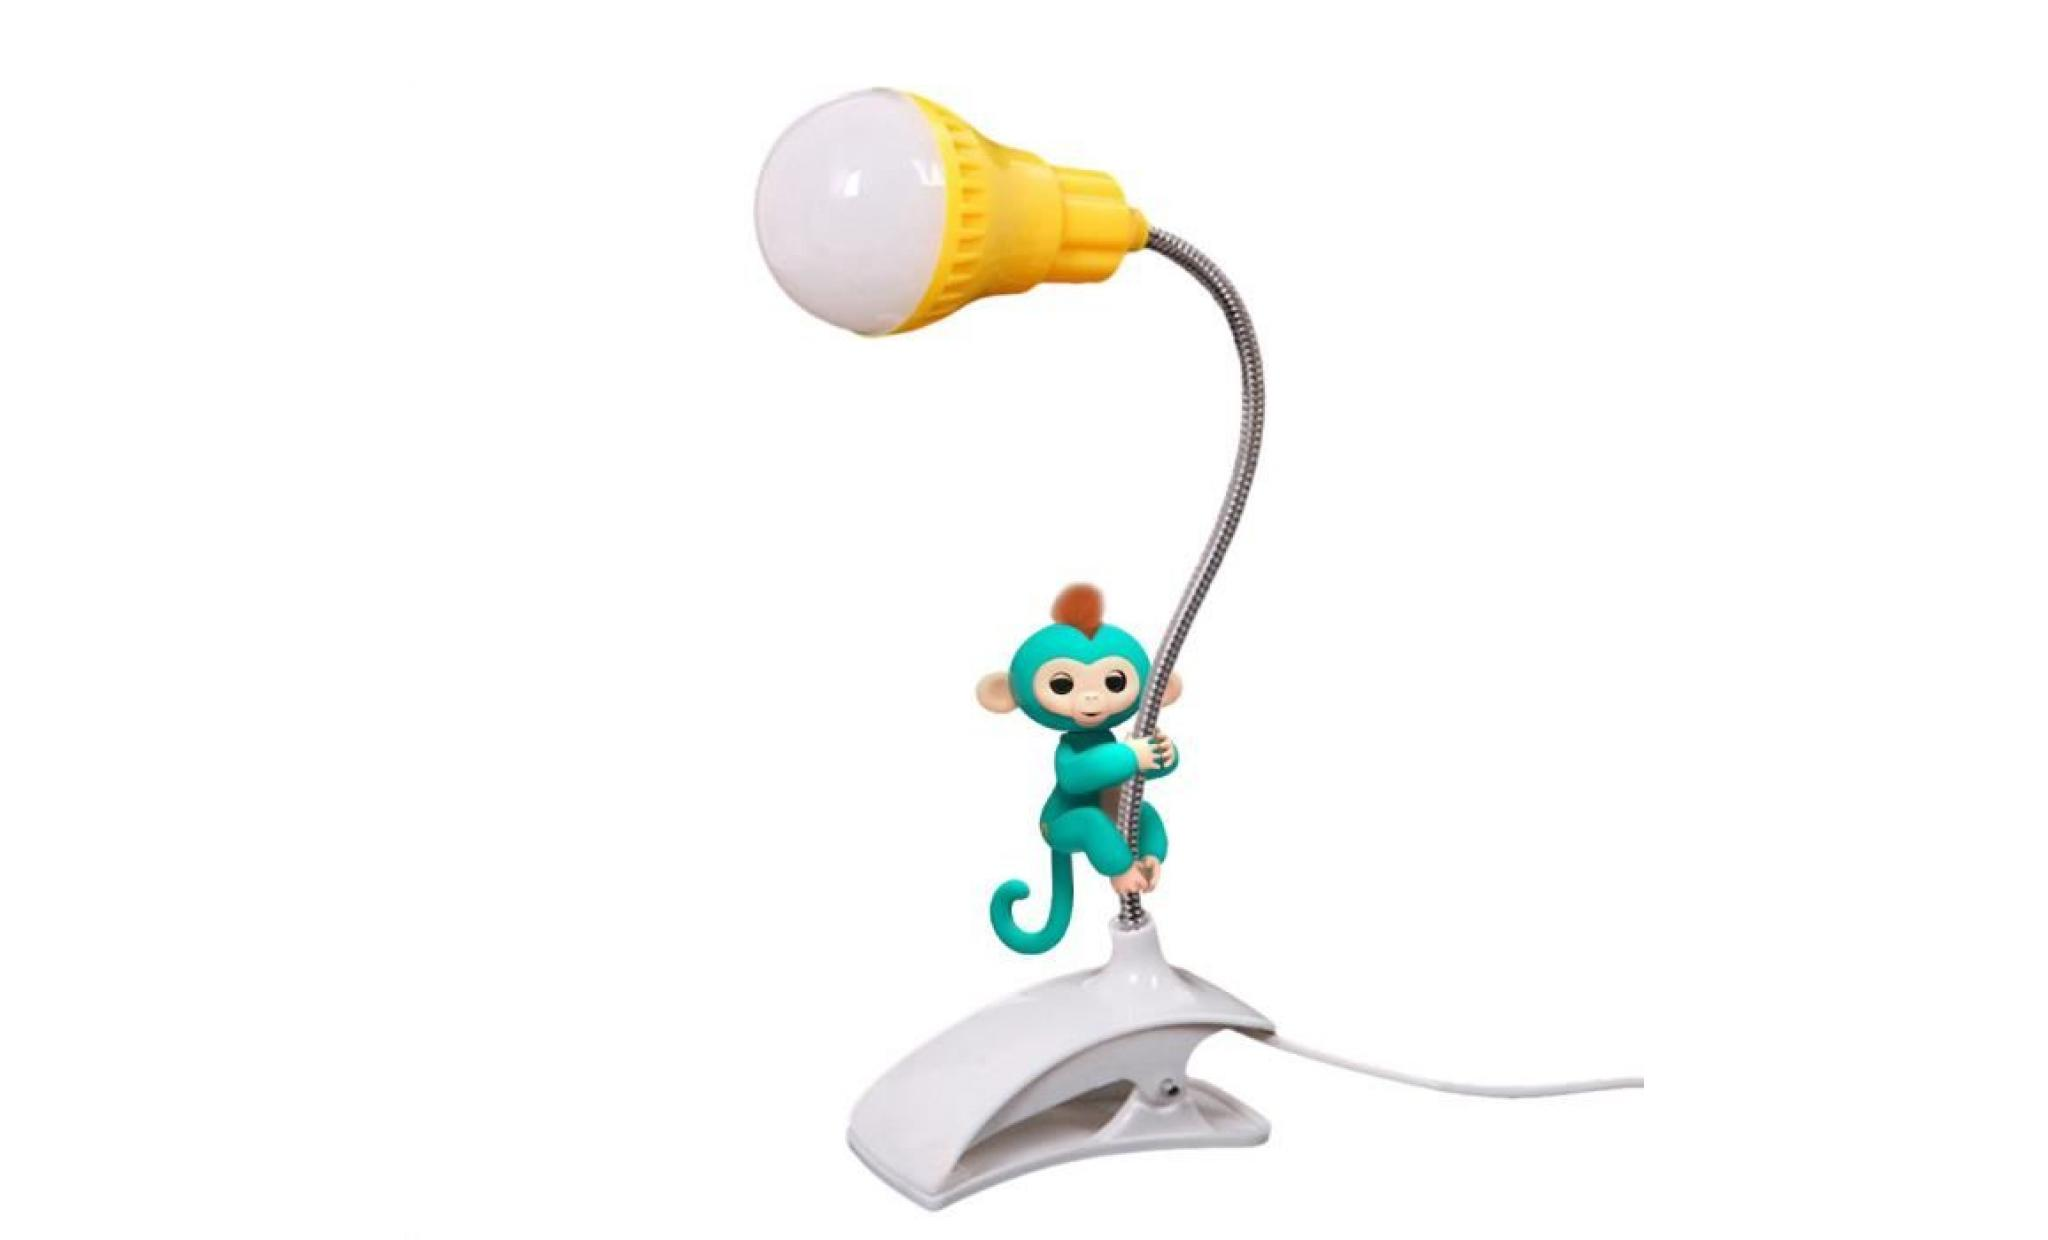 nouveau support de table lampe usb du personnel étudiant de lecture table bureau lampe gn@zoozipo1784